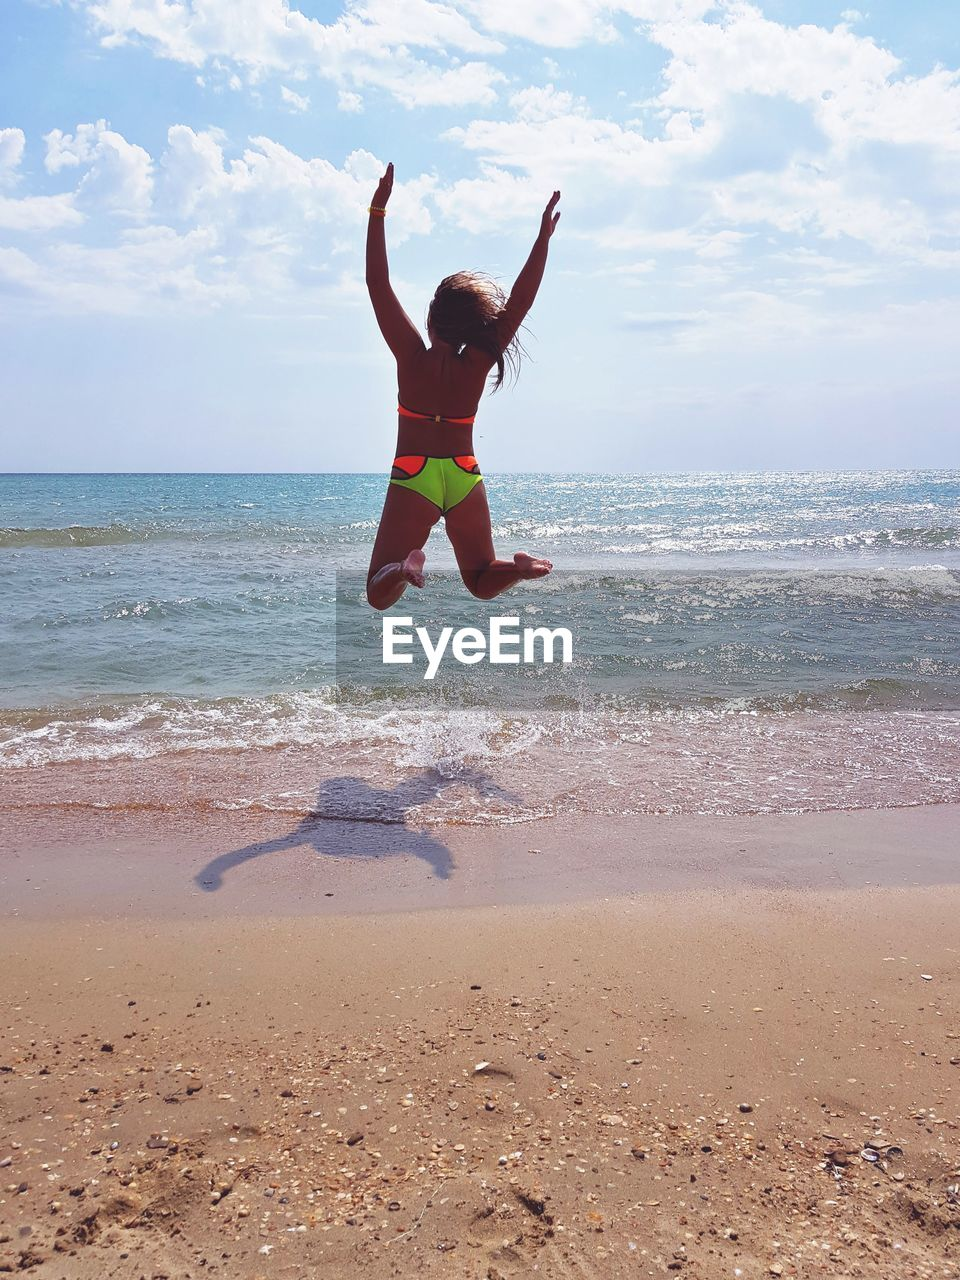 Rear View Of Young Woman Jumping At Beach Against Sky